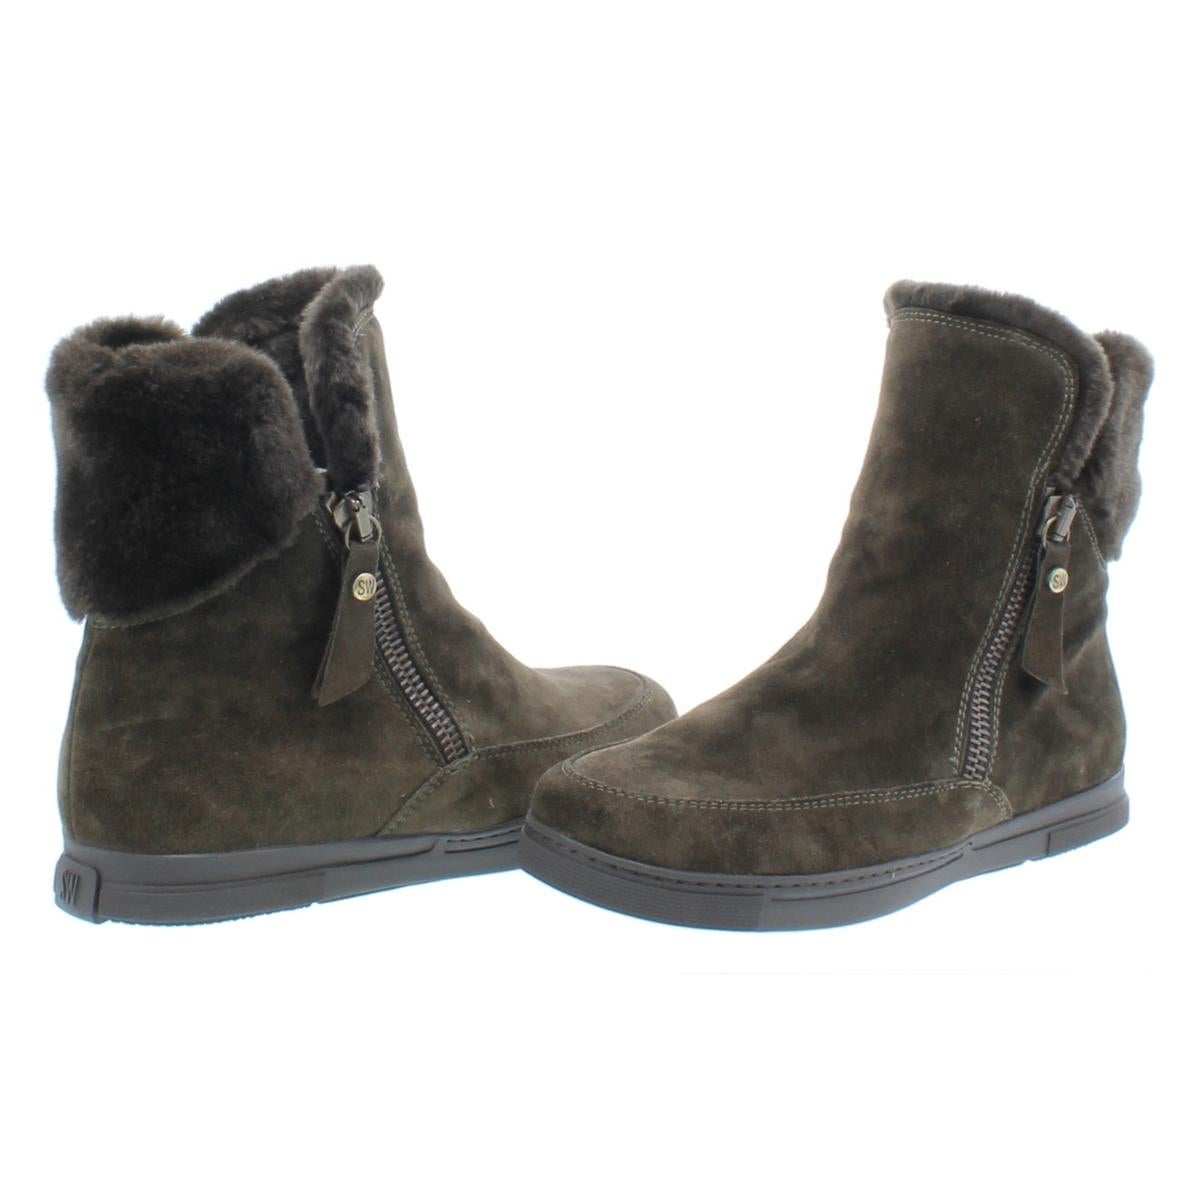 34410ddfaeb0 Shop Stuart Weitzman Womens Furgie Ankle Boots Suede Faux Fur Trim - Free  Shipping Today - Overstock - 23142505